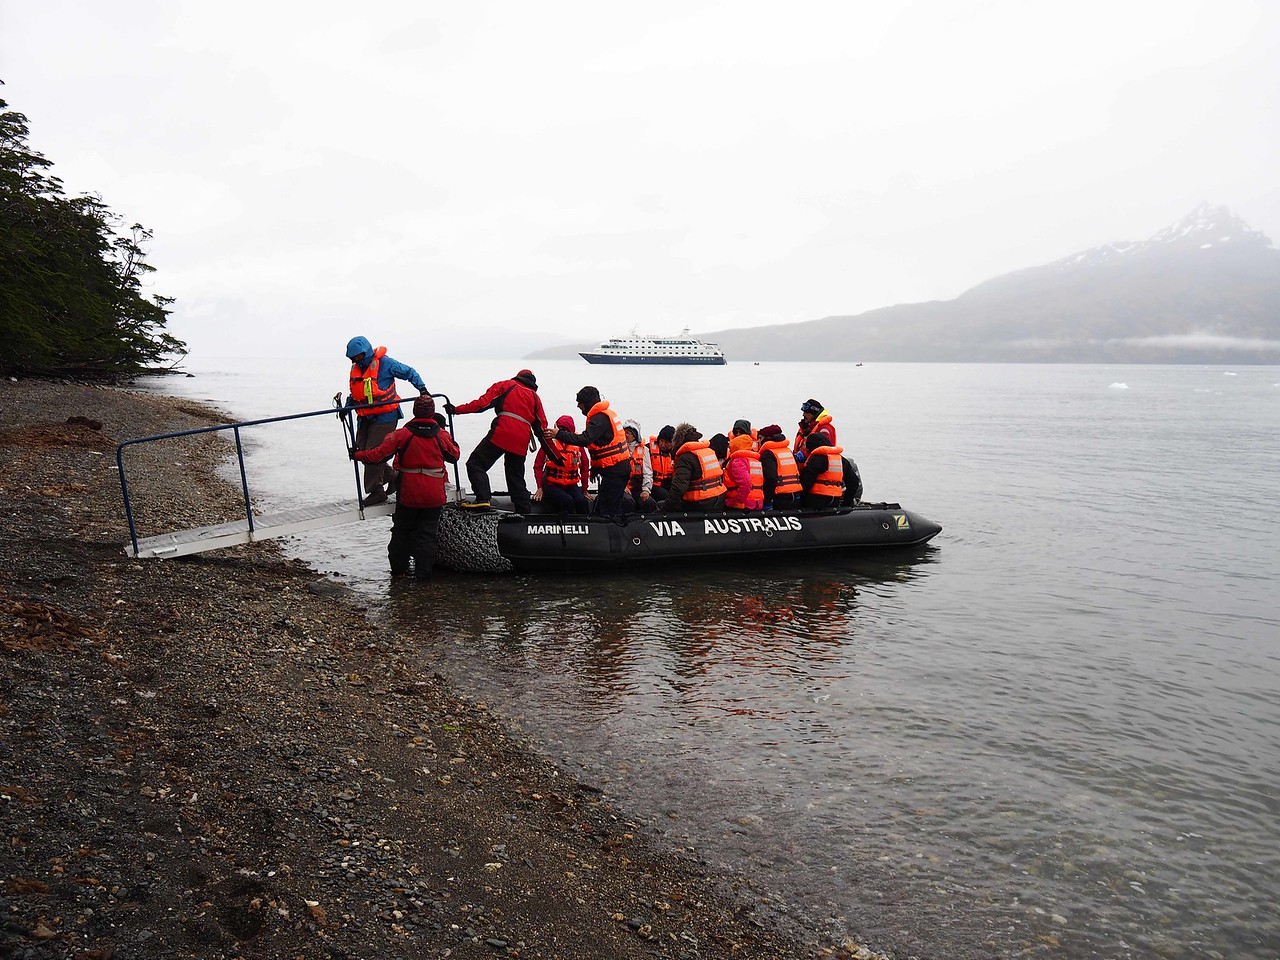 Disembarking on the shore of the Agostini Fjord